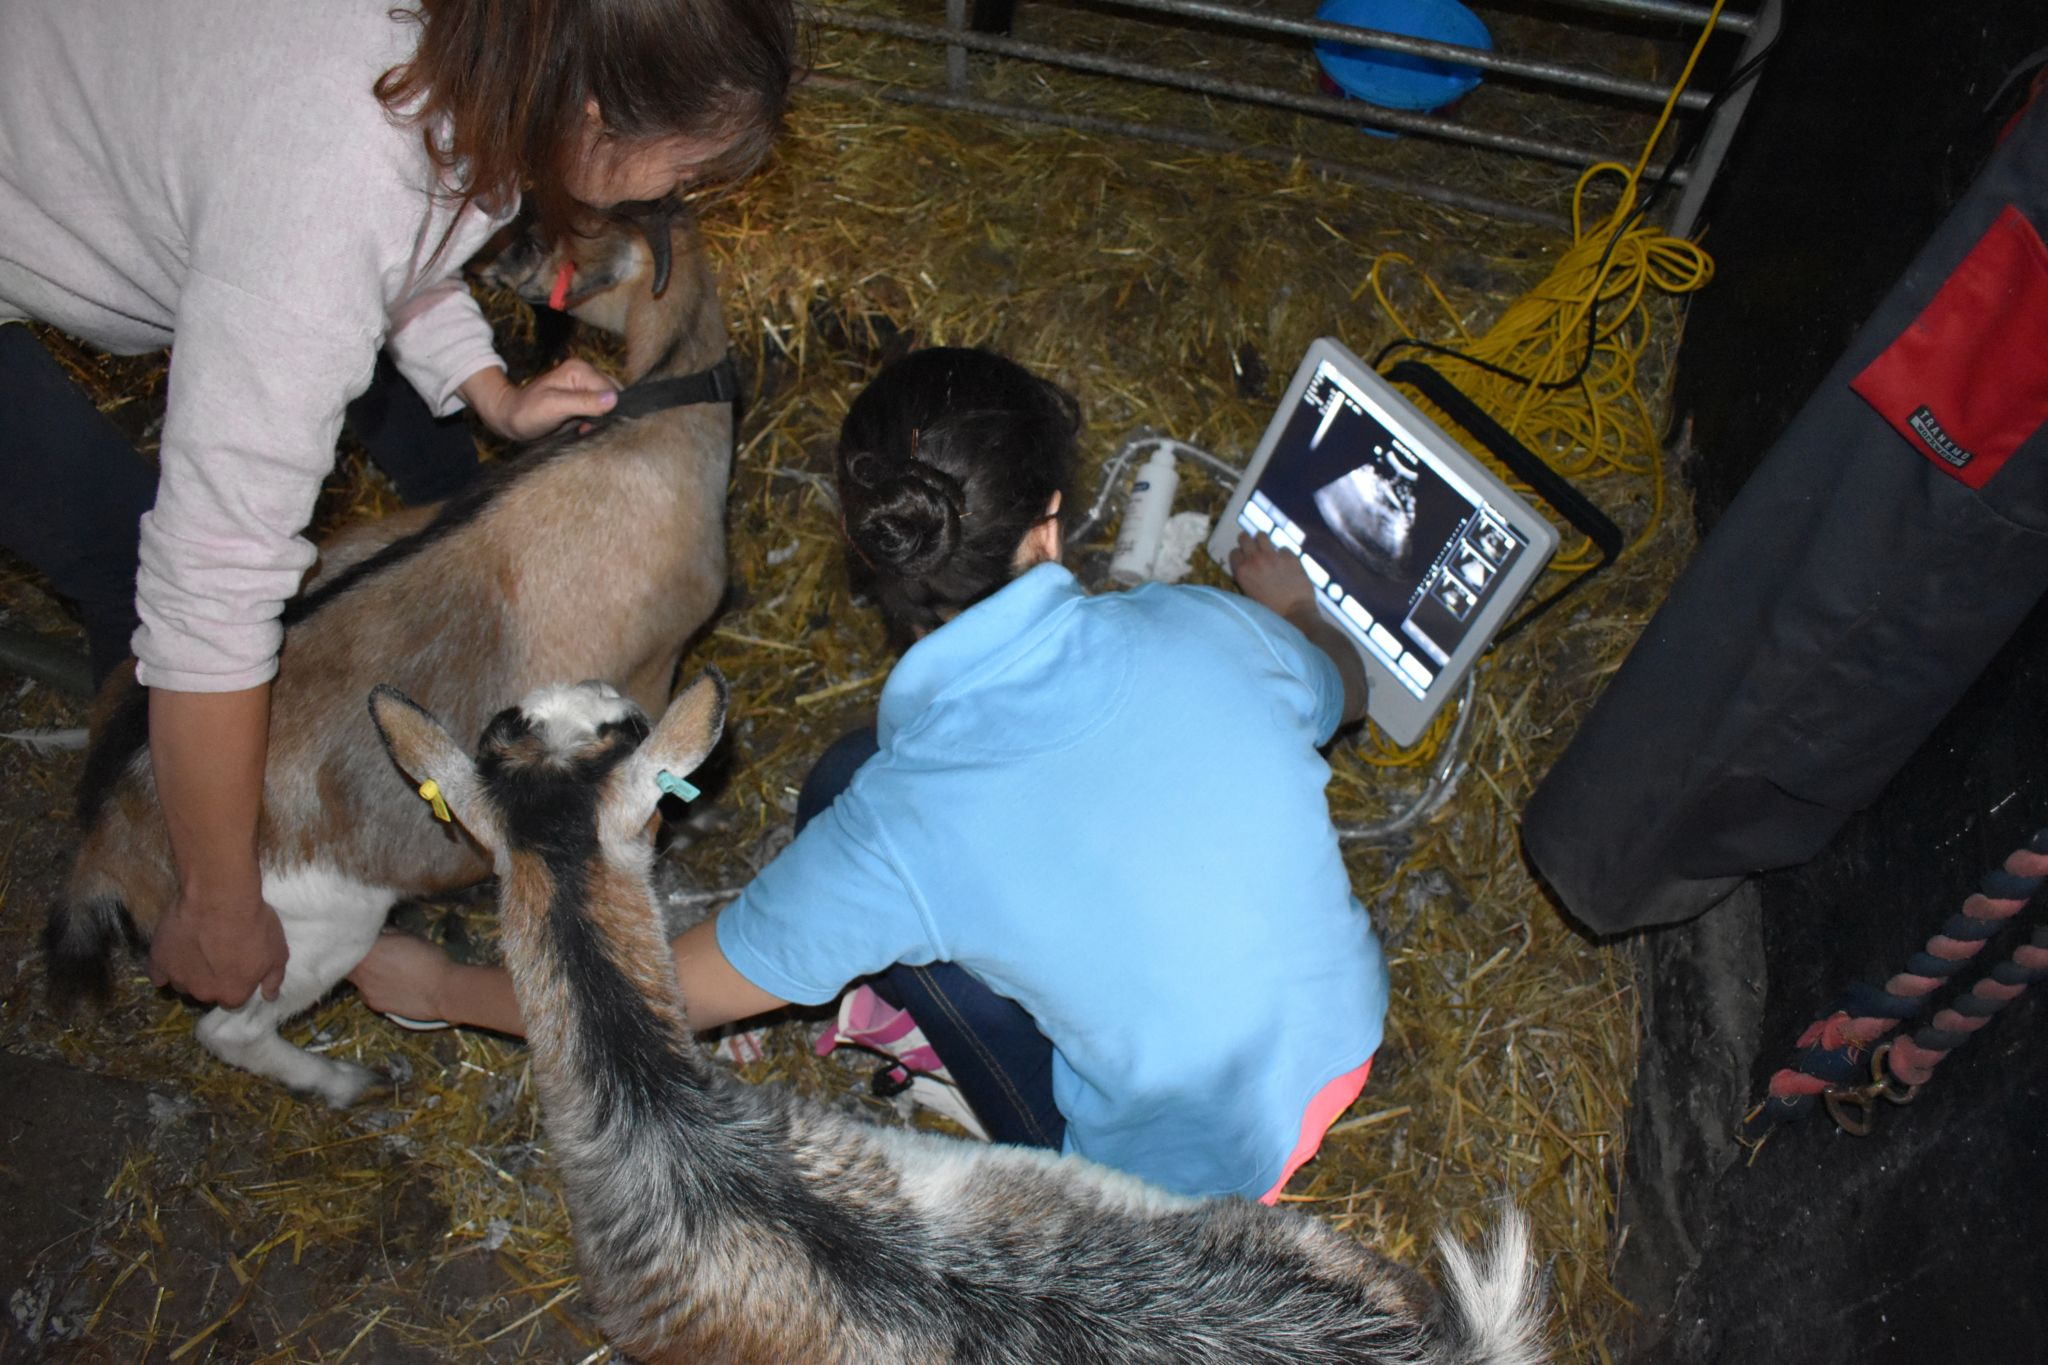 goat-pregnancy-ultrasound-machine-for-sale